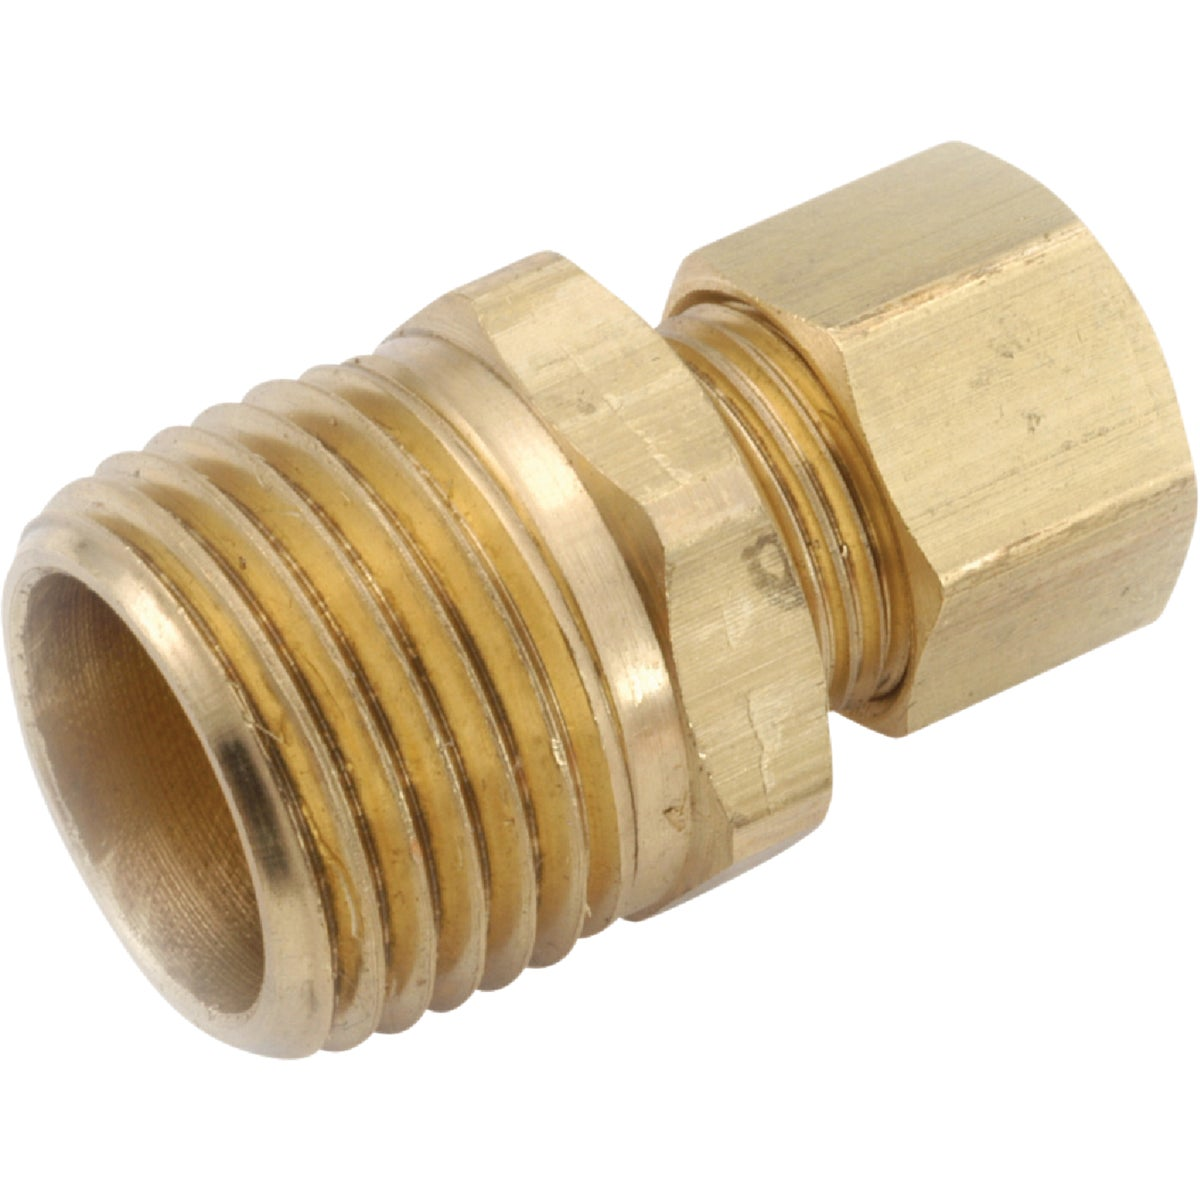 3/8X1/8 MALE CONNECTOR - 750068-0602 by Anderson Metals Corp